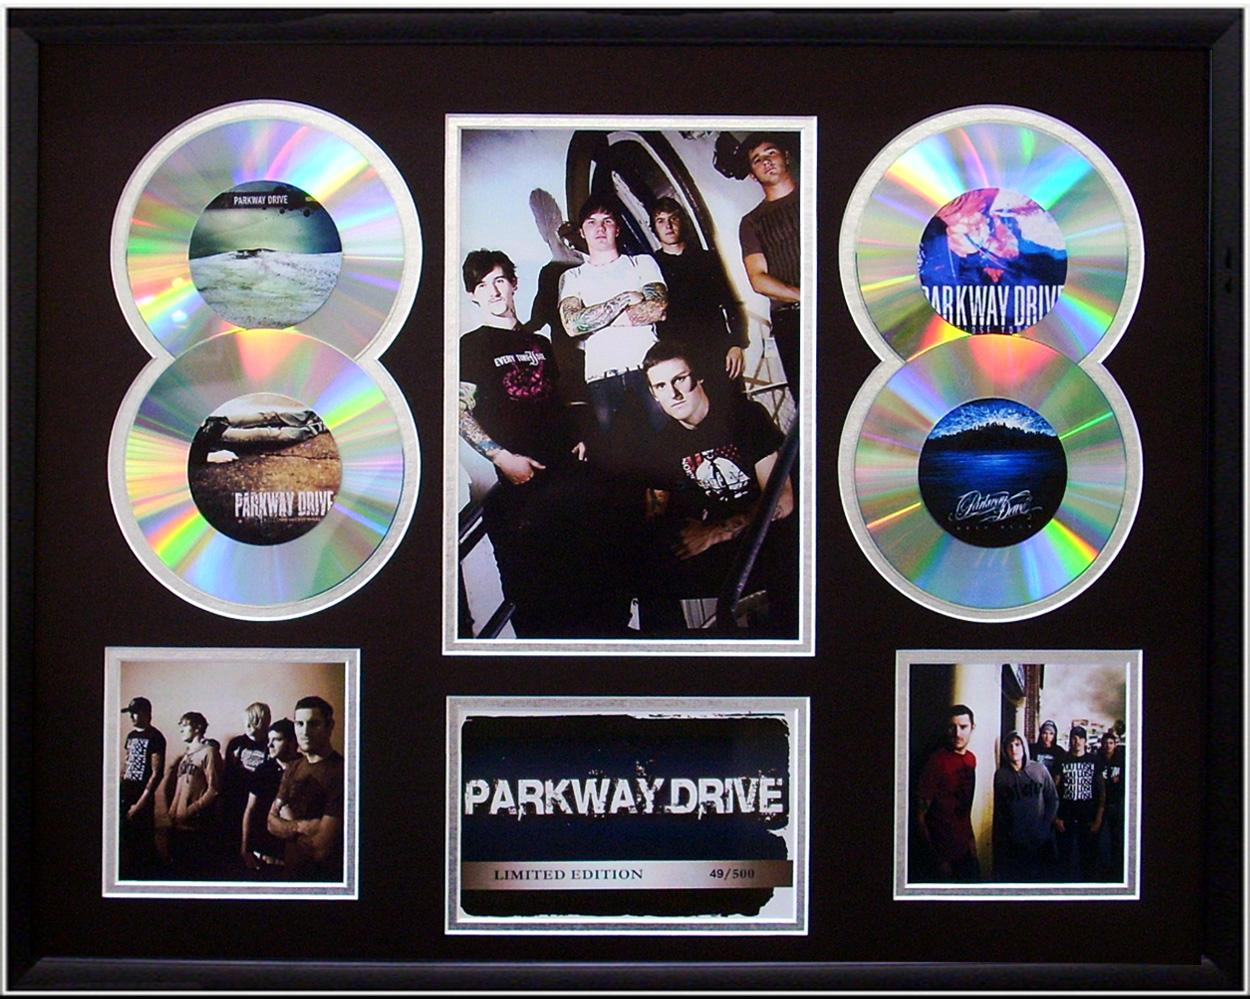 Parkway-Drive-Limited-Edition-4-CD-Photo-Display